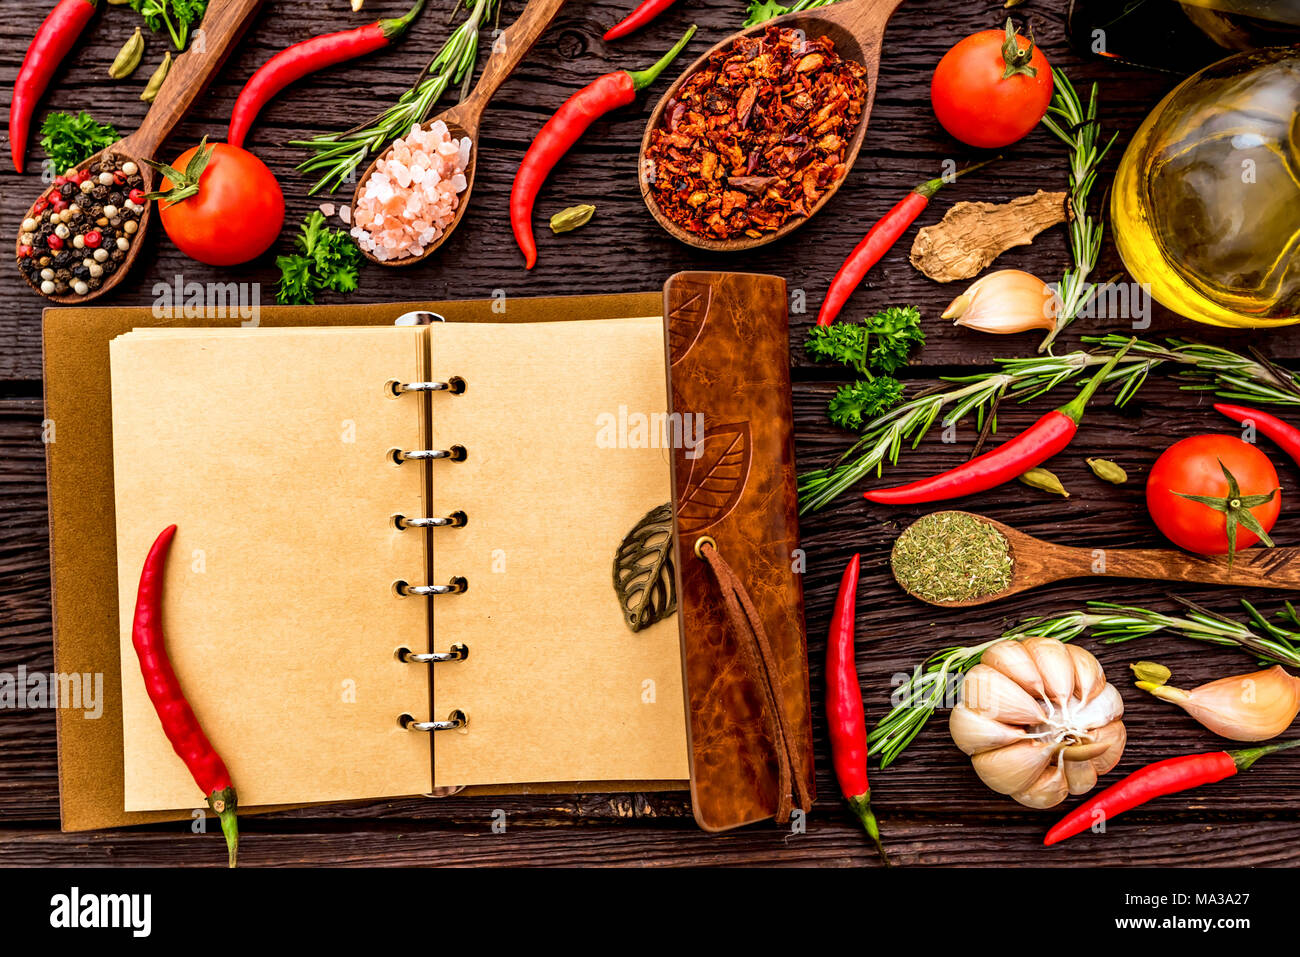 Top View Open Recipe Book With Chili Peppers Garlic Oil Balsamic Vinegar Salt Herbs And Spices On Wooden Background Cooking Concept Selective F Stock Photo Alamy